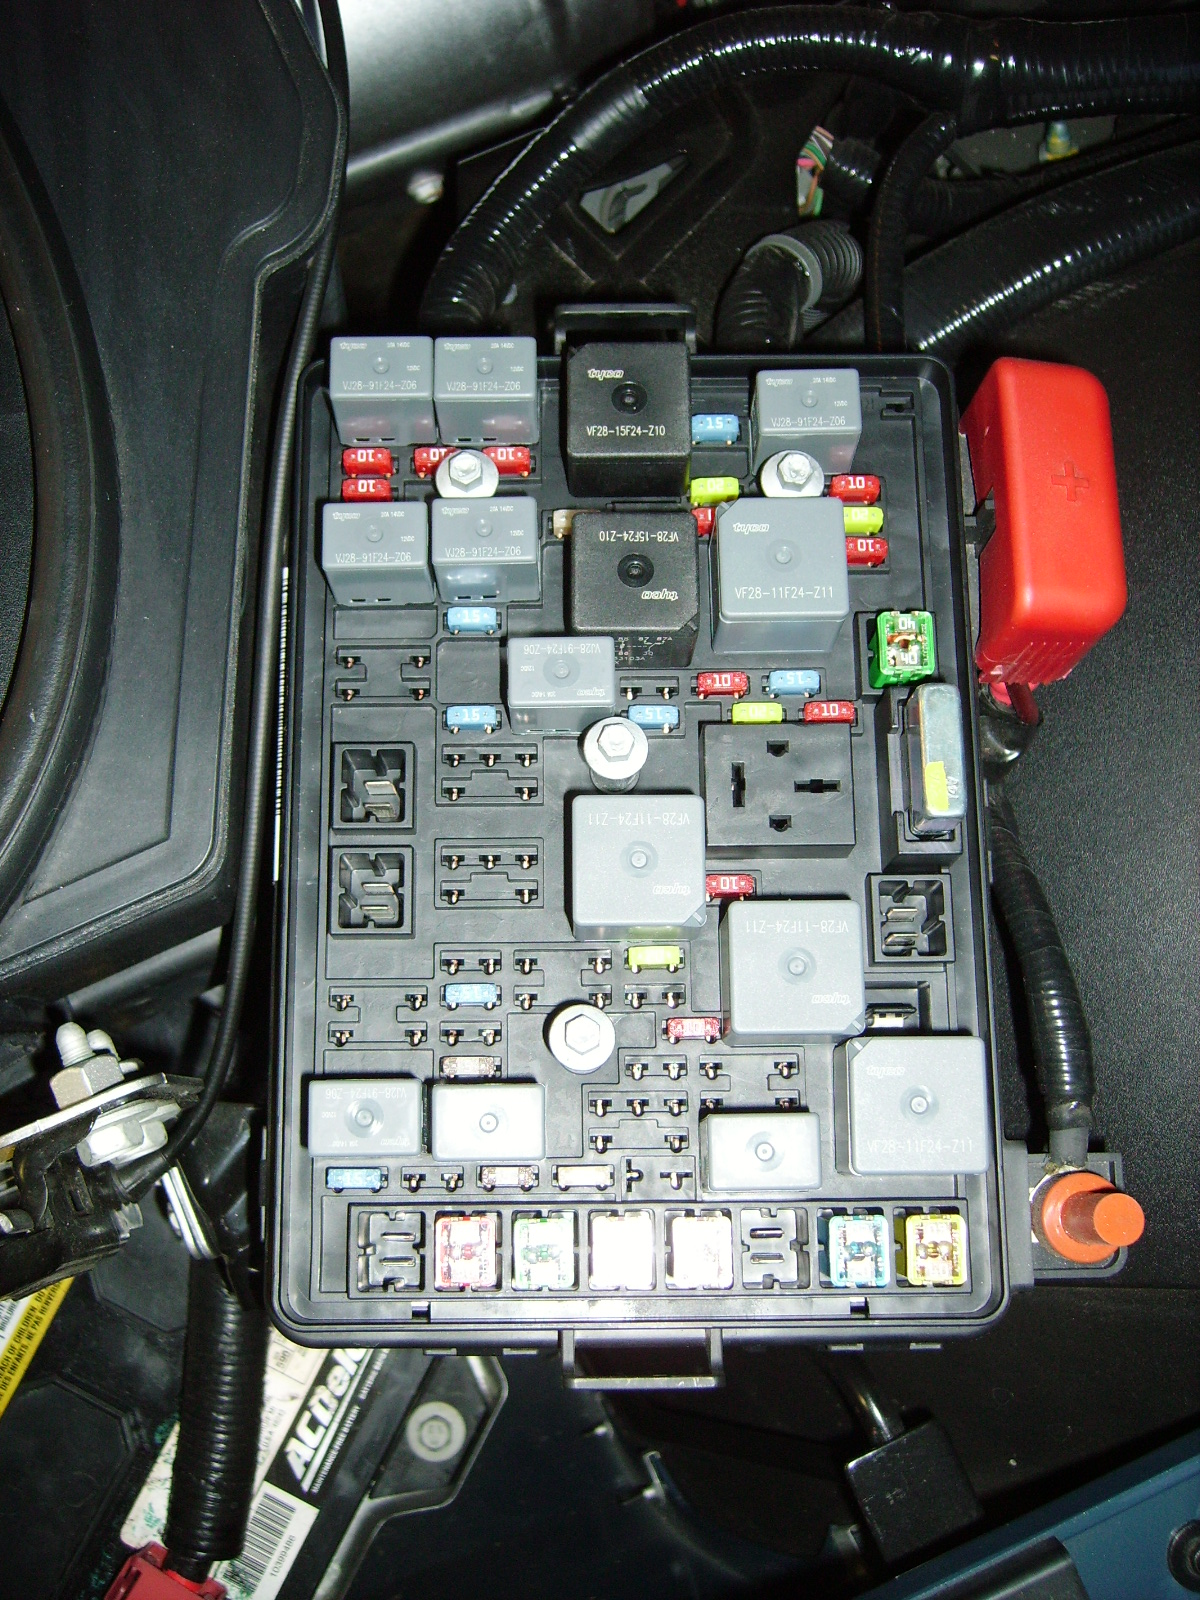 D Intermittant Service Air Bag Message Electrical Problem Fuse Box Under Hood